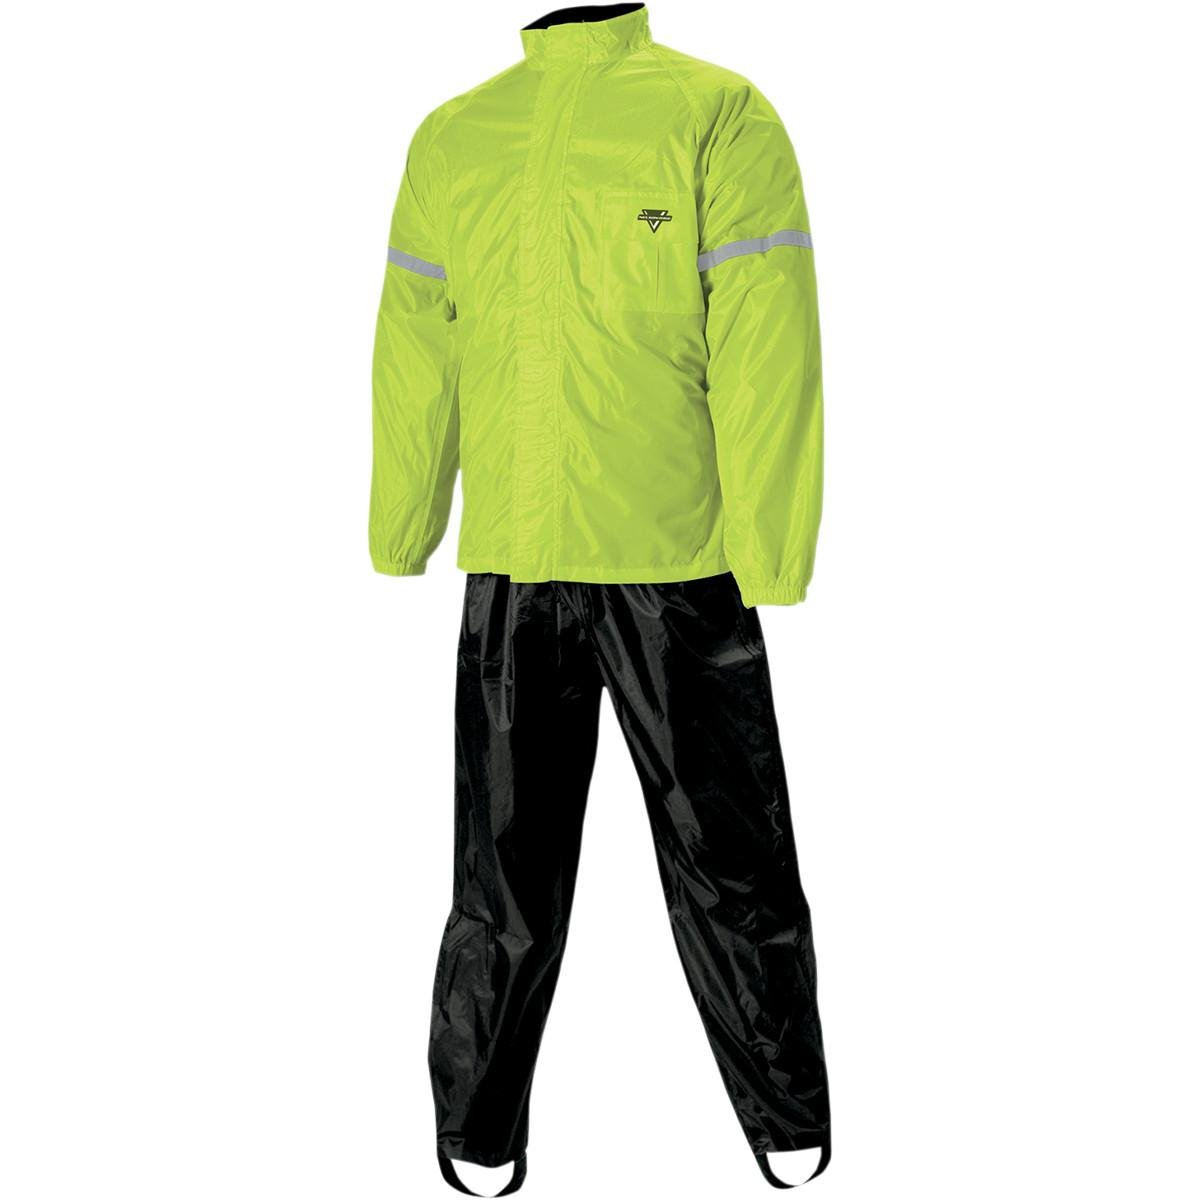 Nelson-Rigg WP-8000 Weatherpro Men's 2-Piece Sports Bike Motorcycle Rain Suits - Black/Hi-Visibility Yellow / Medium